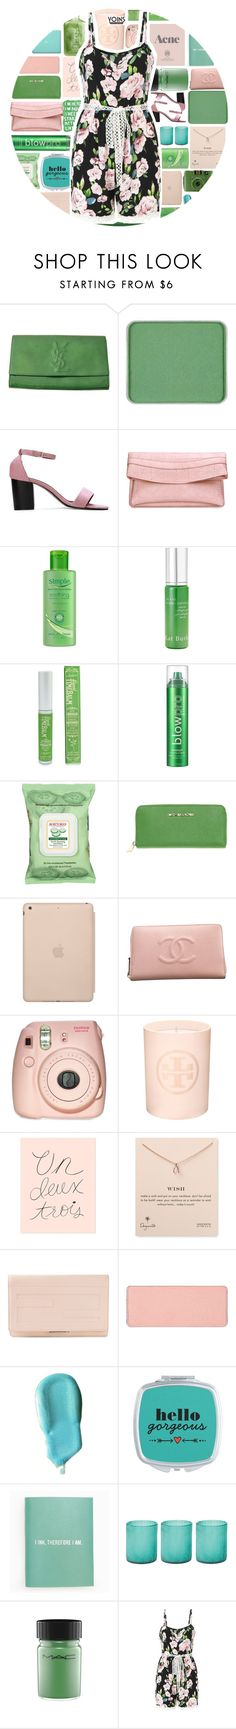 """YOINS"" by xgracieeee ❤ liked on Polyvore featuring shu uemura, Guide London, Simple, Kat Burki, TheBalm, blow, Burt's Bees, Michael Kors, Black Apple and Chanel"